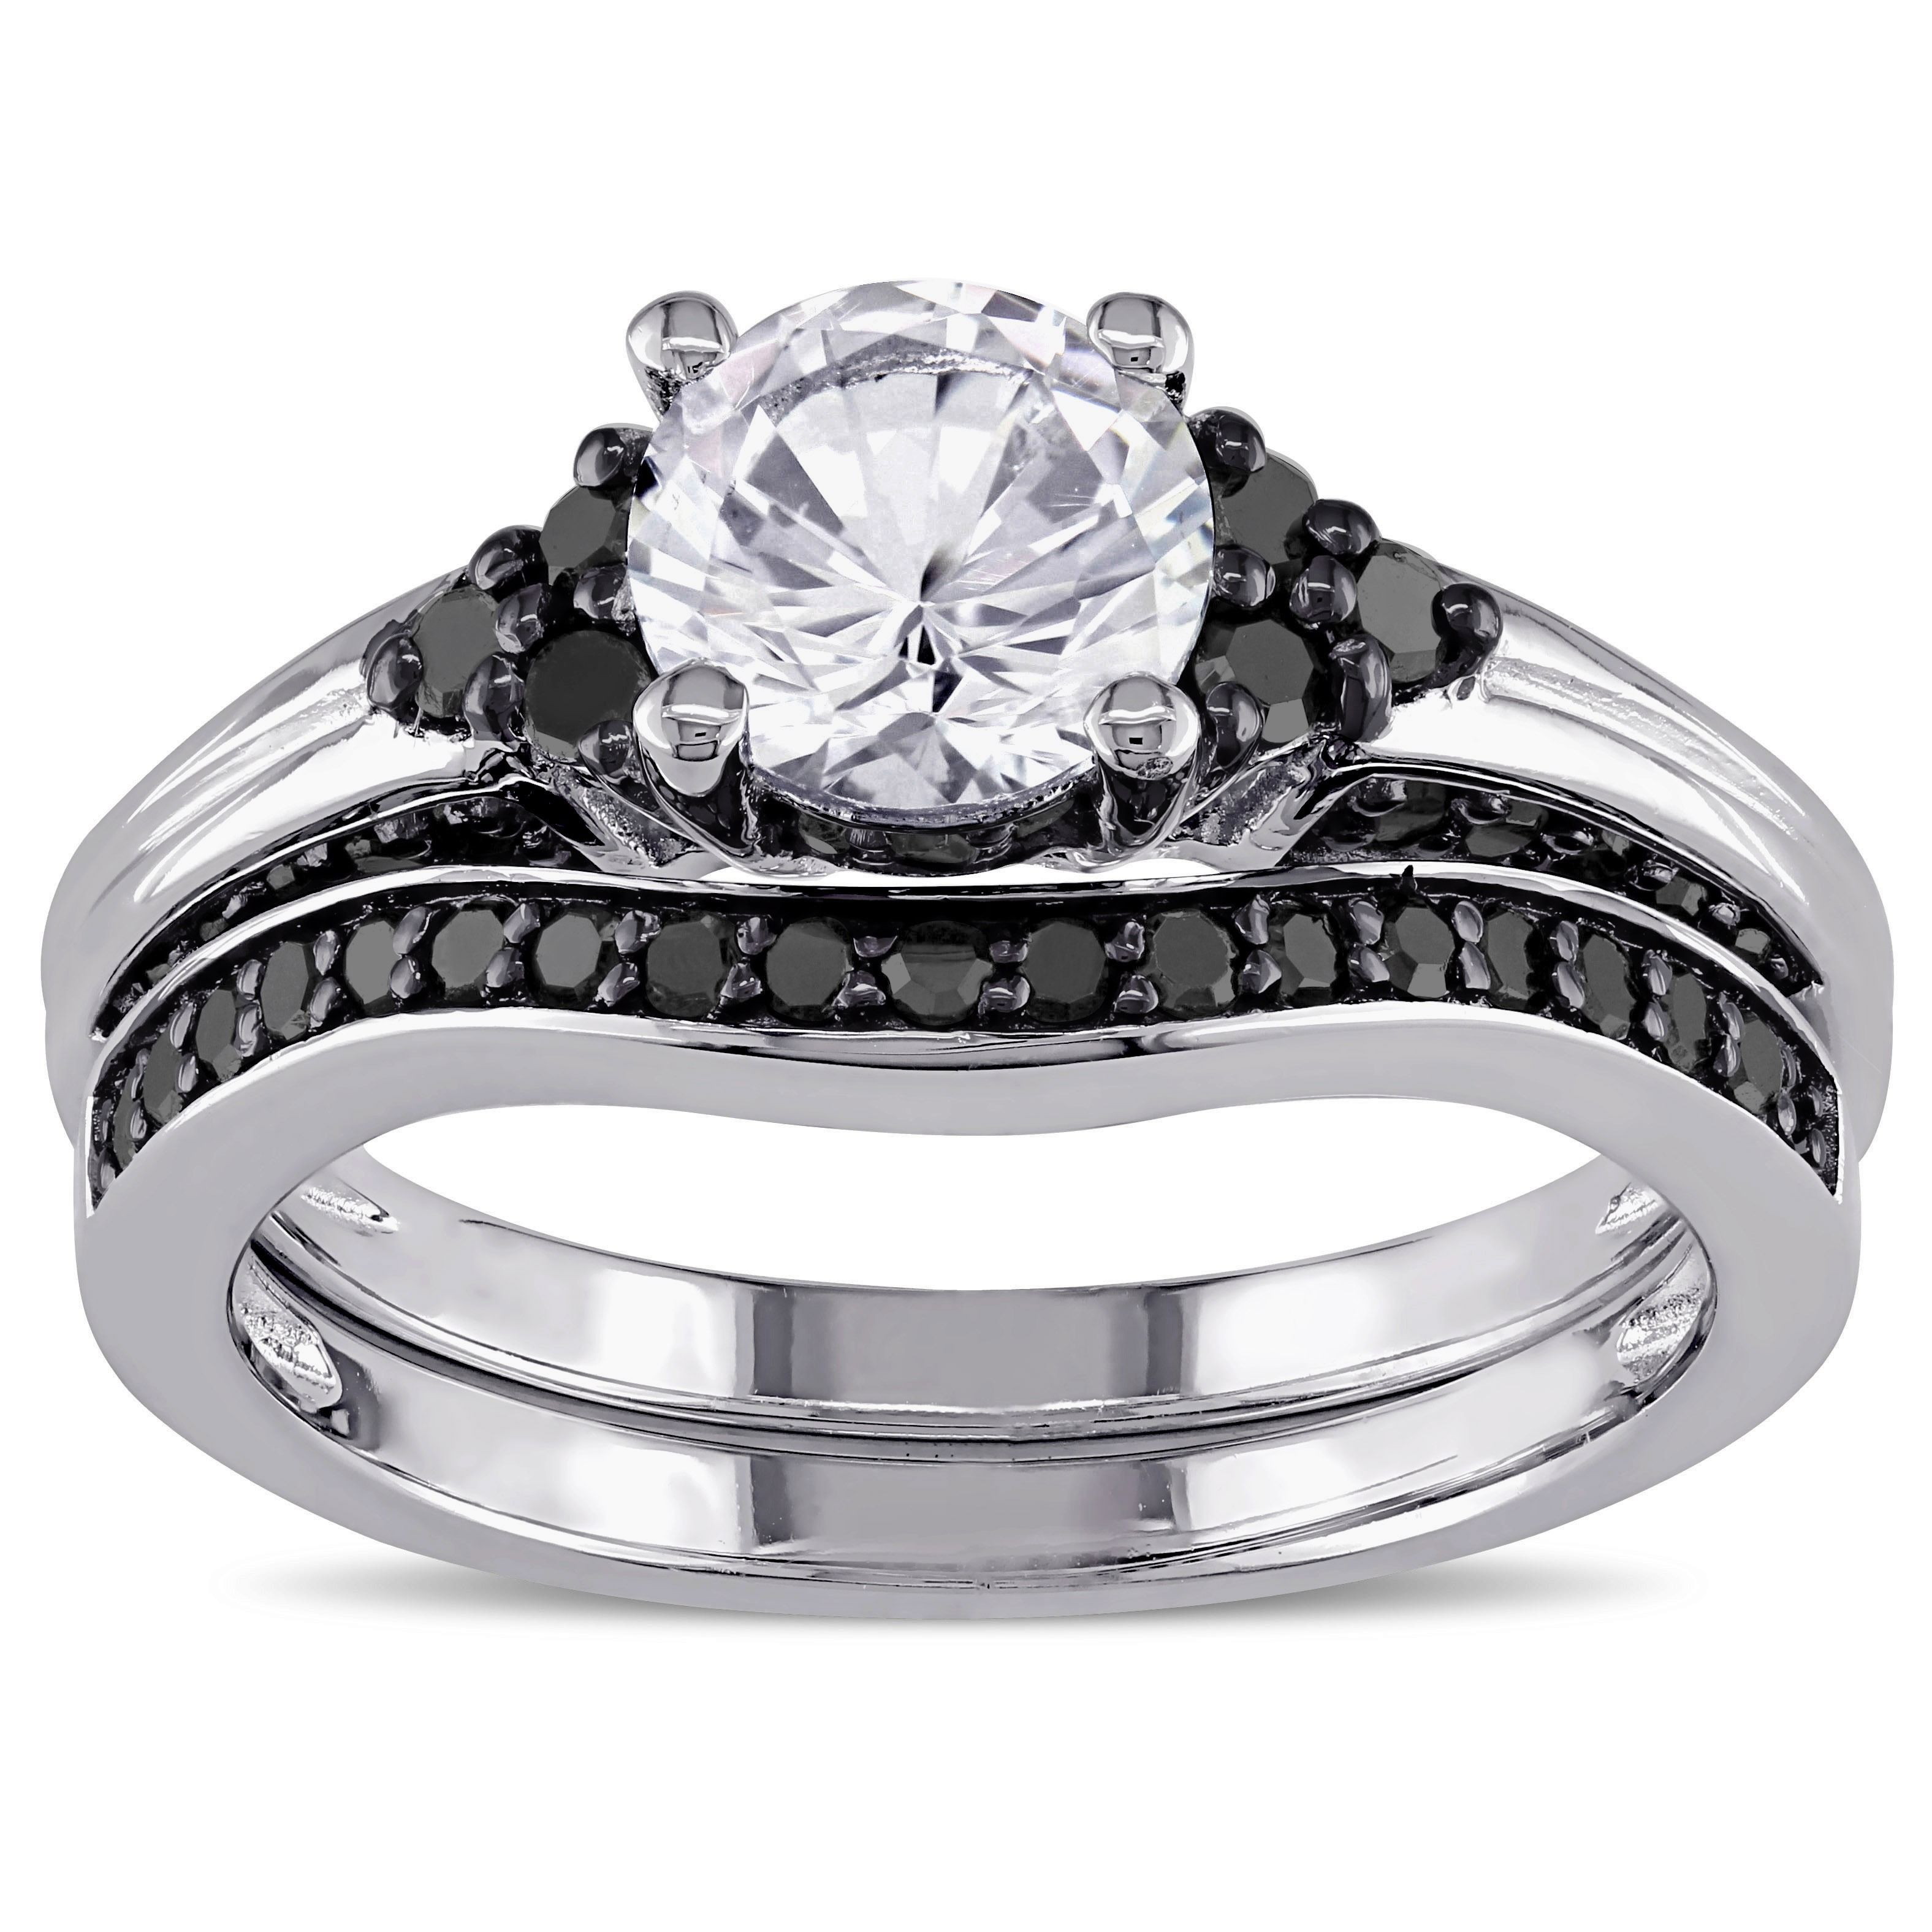 44+ White sapphire bridal rings ideas in 2021